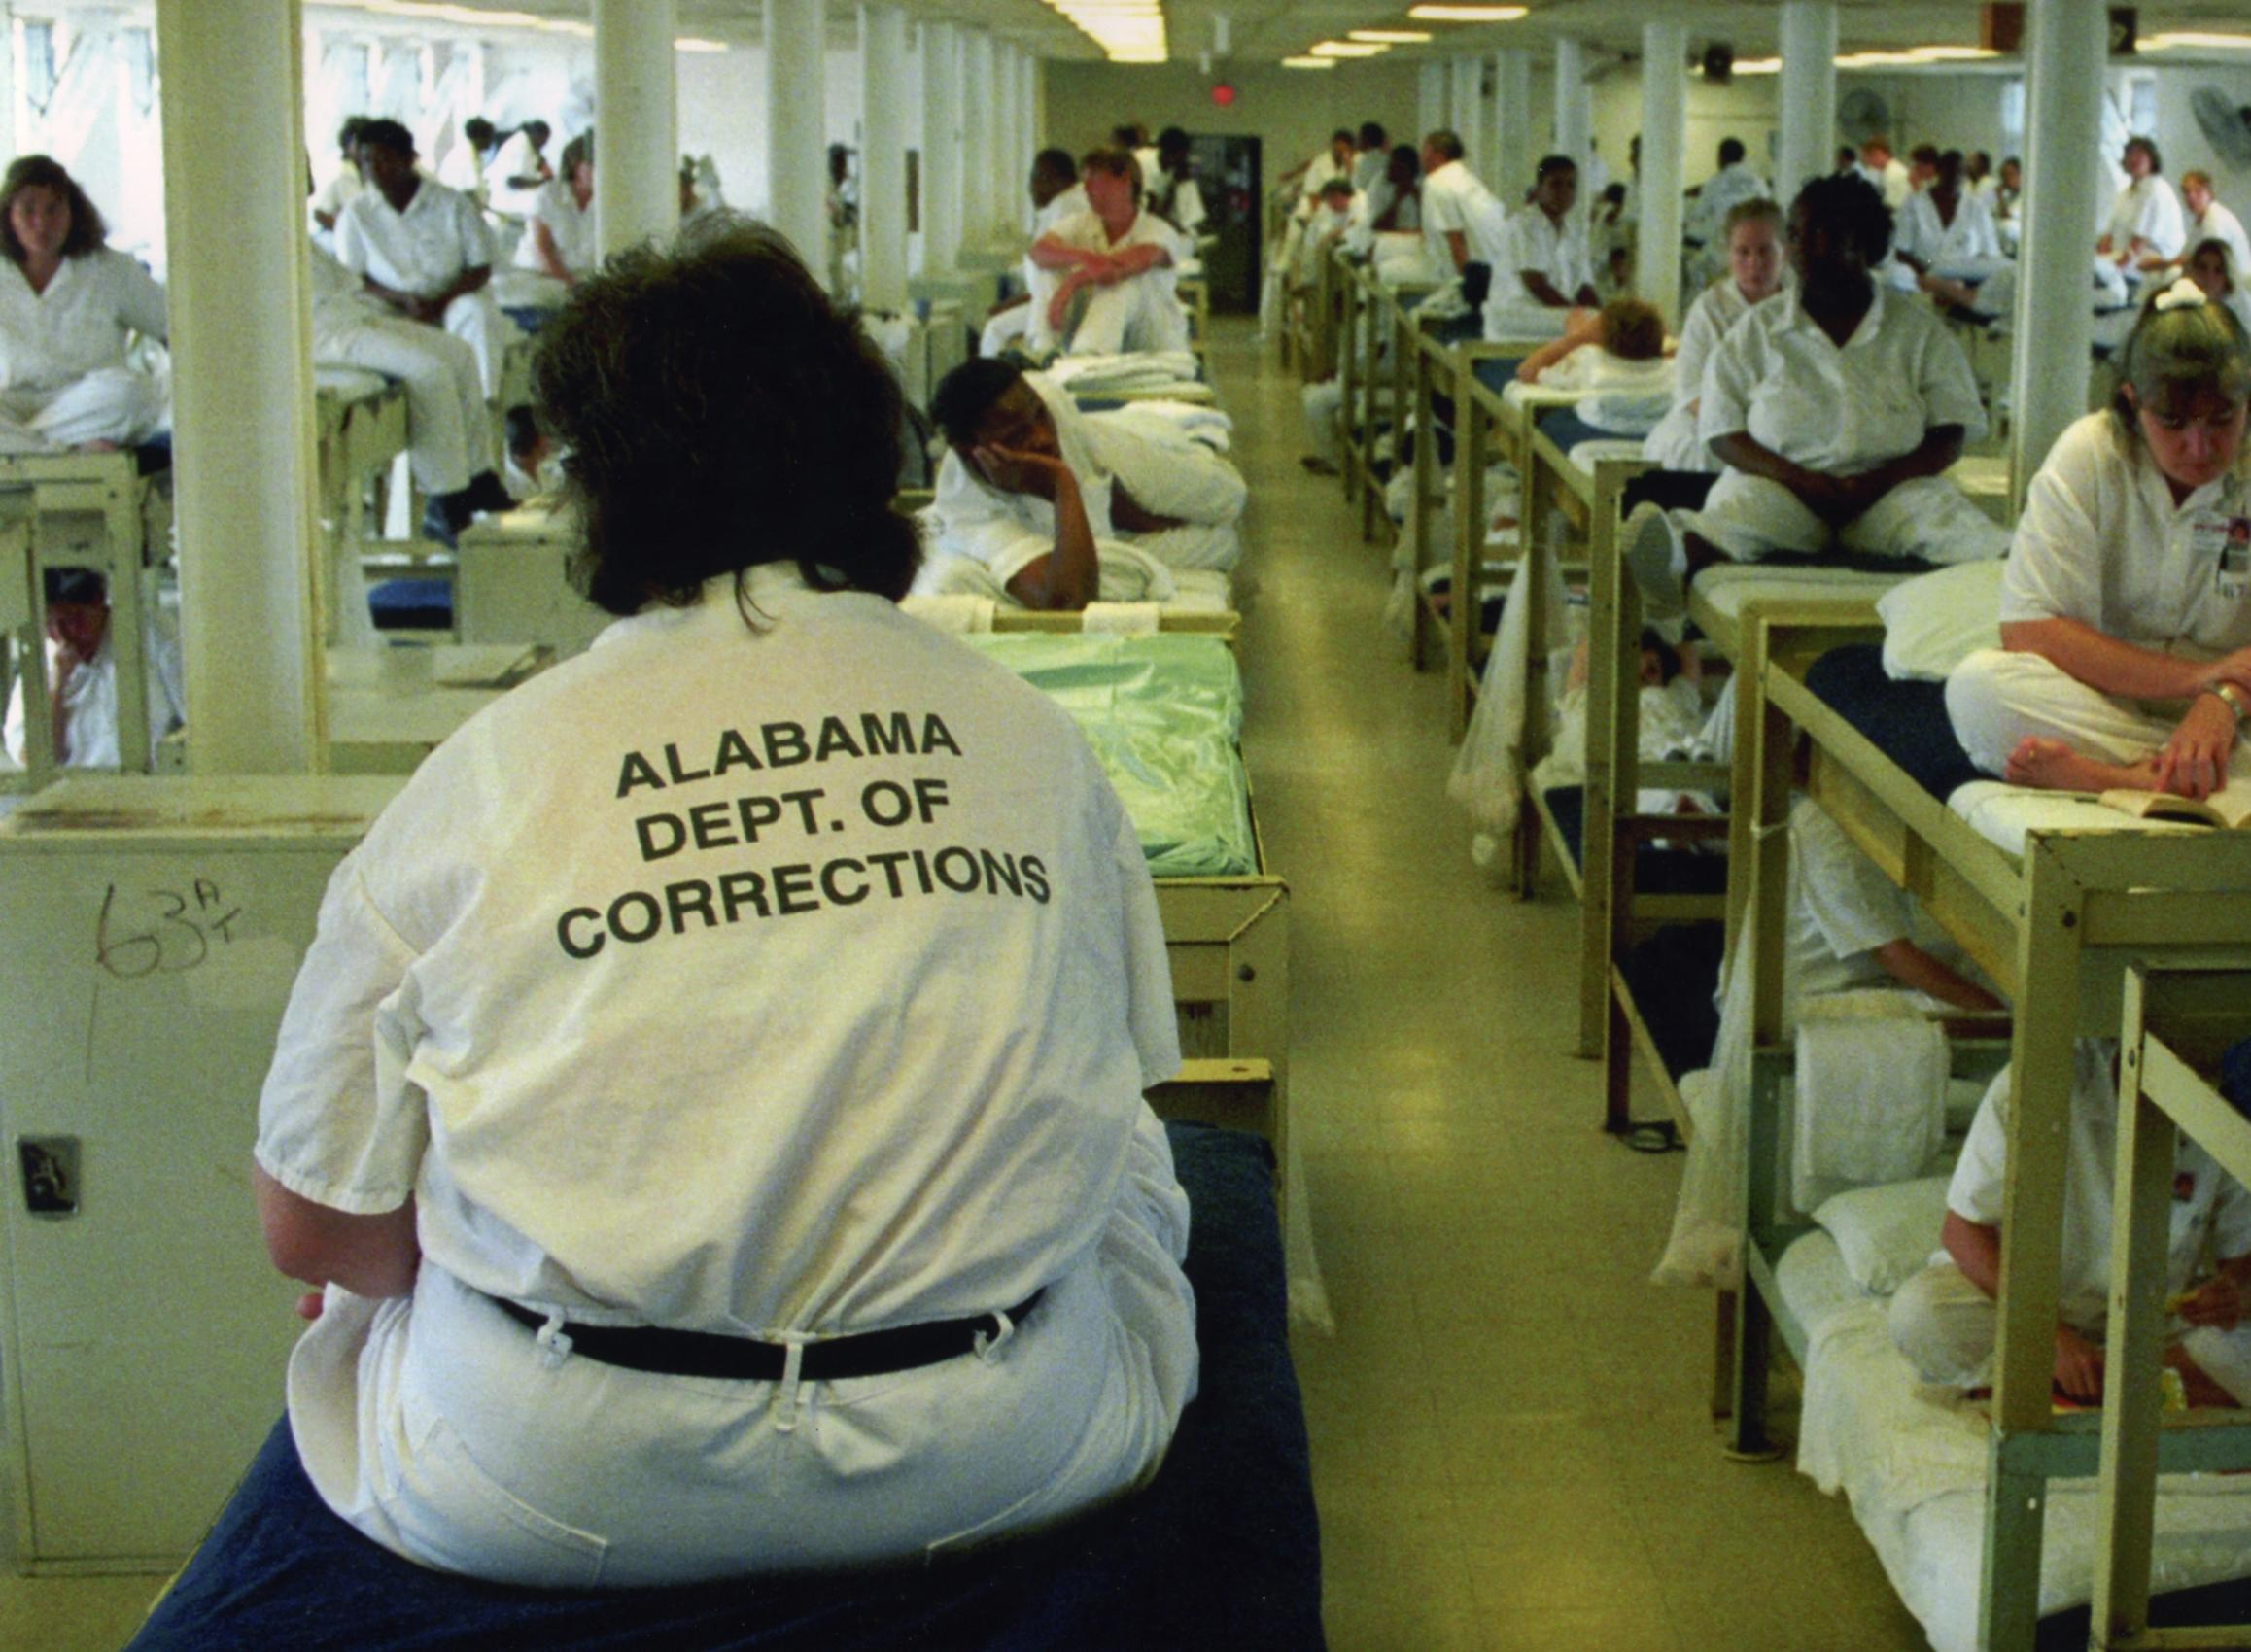 prison overcrowding essay alabama prison overcrowding alabama  alabama prison overcrowding alabama public radio alabama arrests down but prison crowding remains